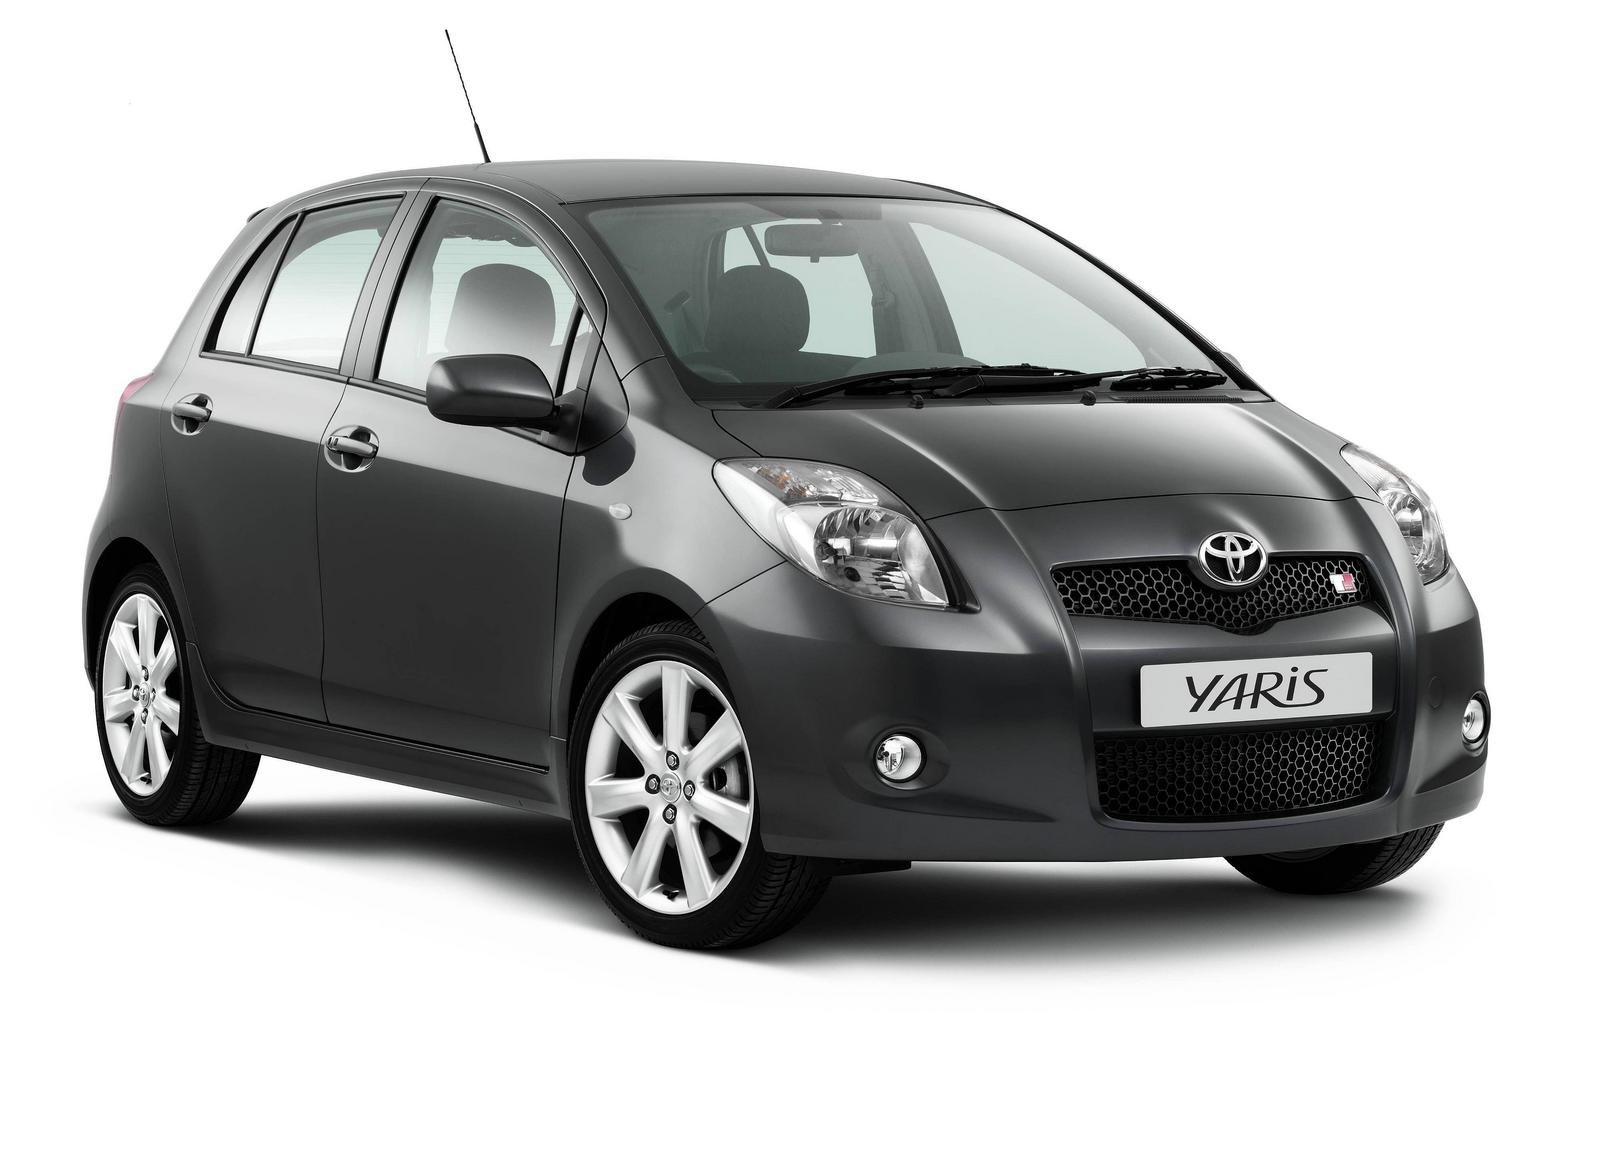 2007 toyota yaris ts picture 101438 car review top speed. Black Bedroom Furniture Sets. Home Design Ideas